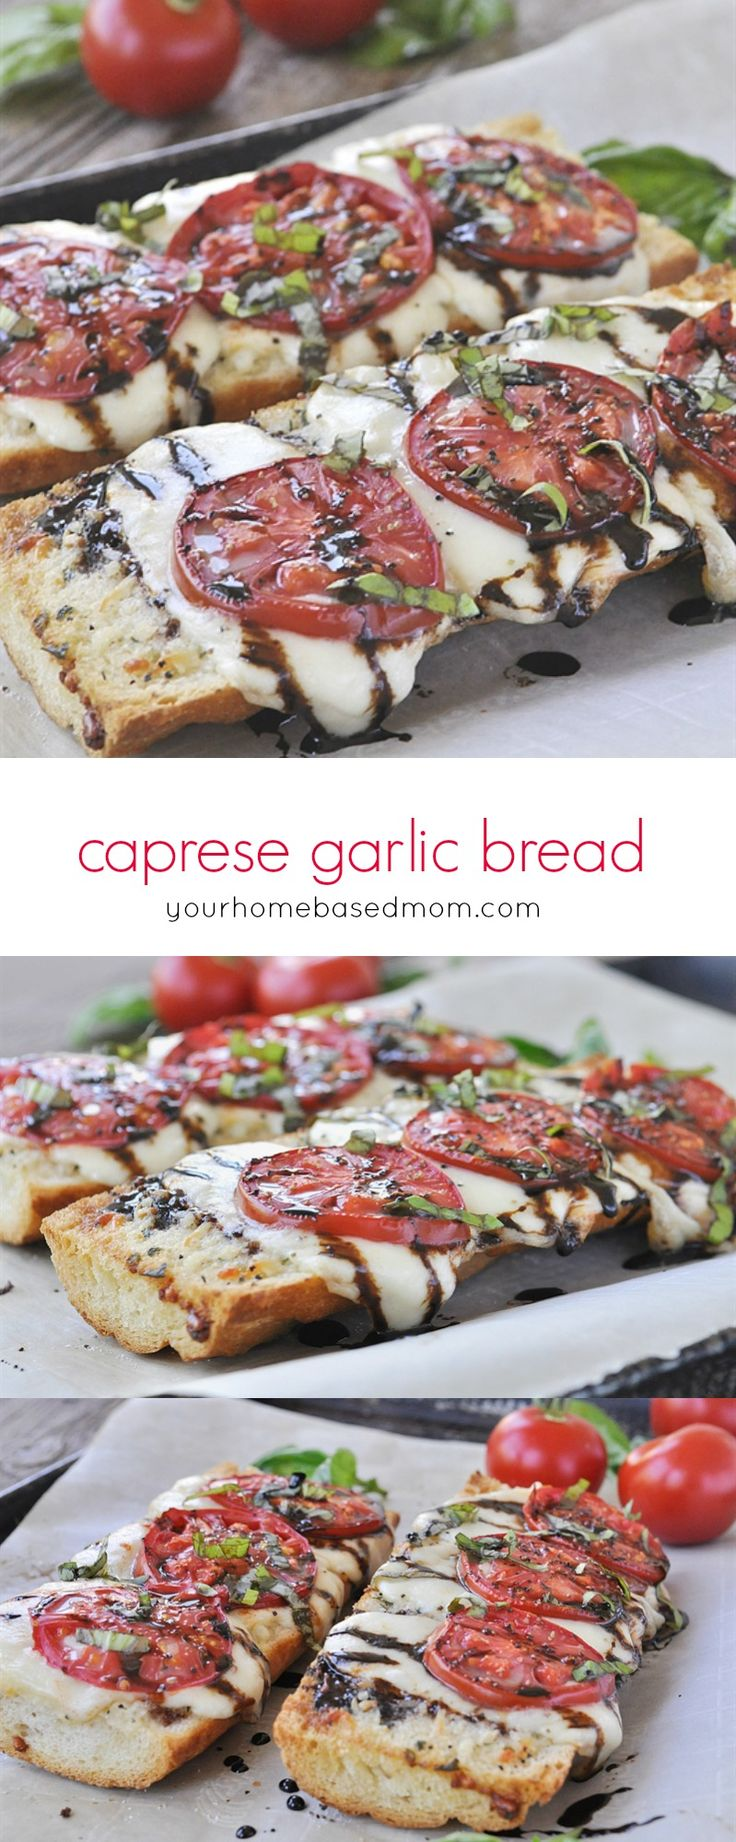 Caprese Garlic Bread ~ the perfect combination of two favorite dishes that makes for the perfect summer treat!